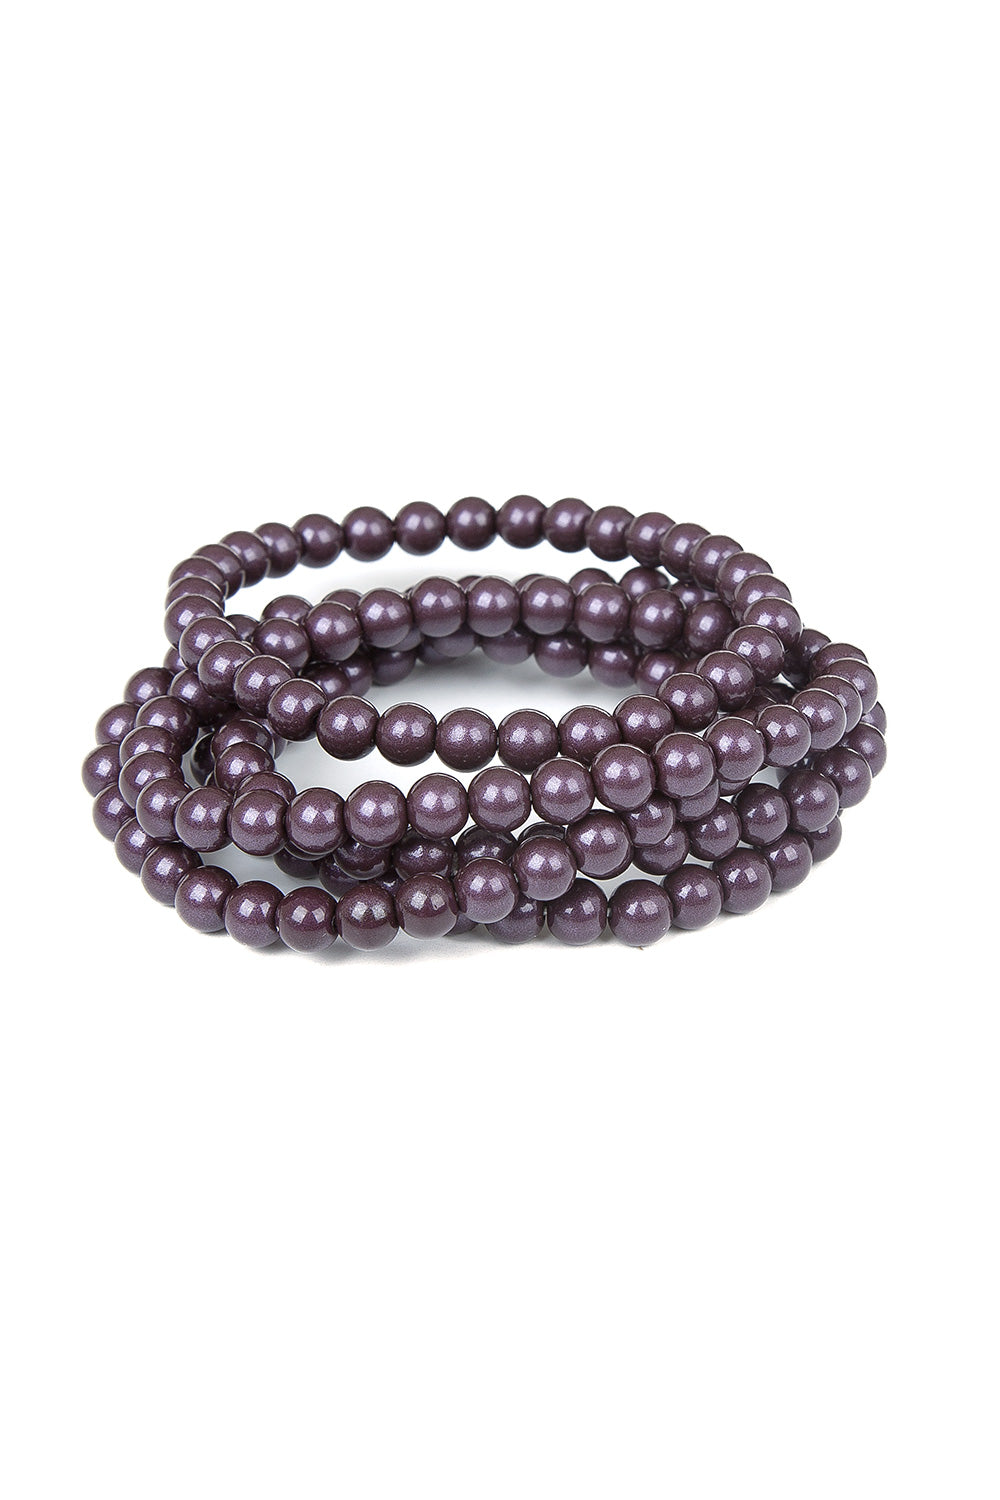 Type 2 Gibson Bracelet in Purple